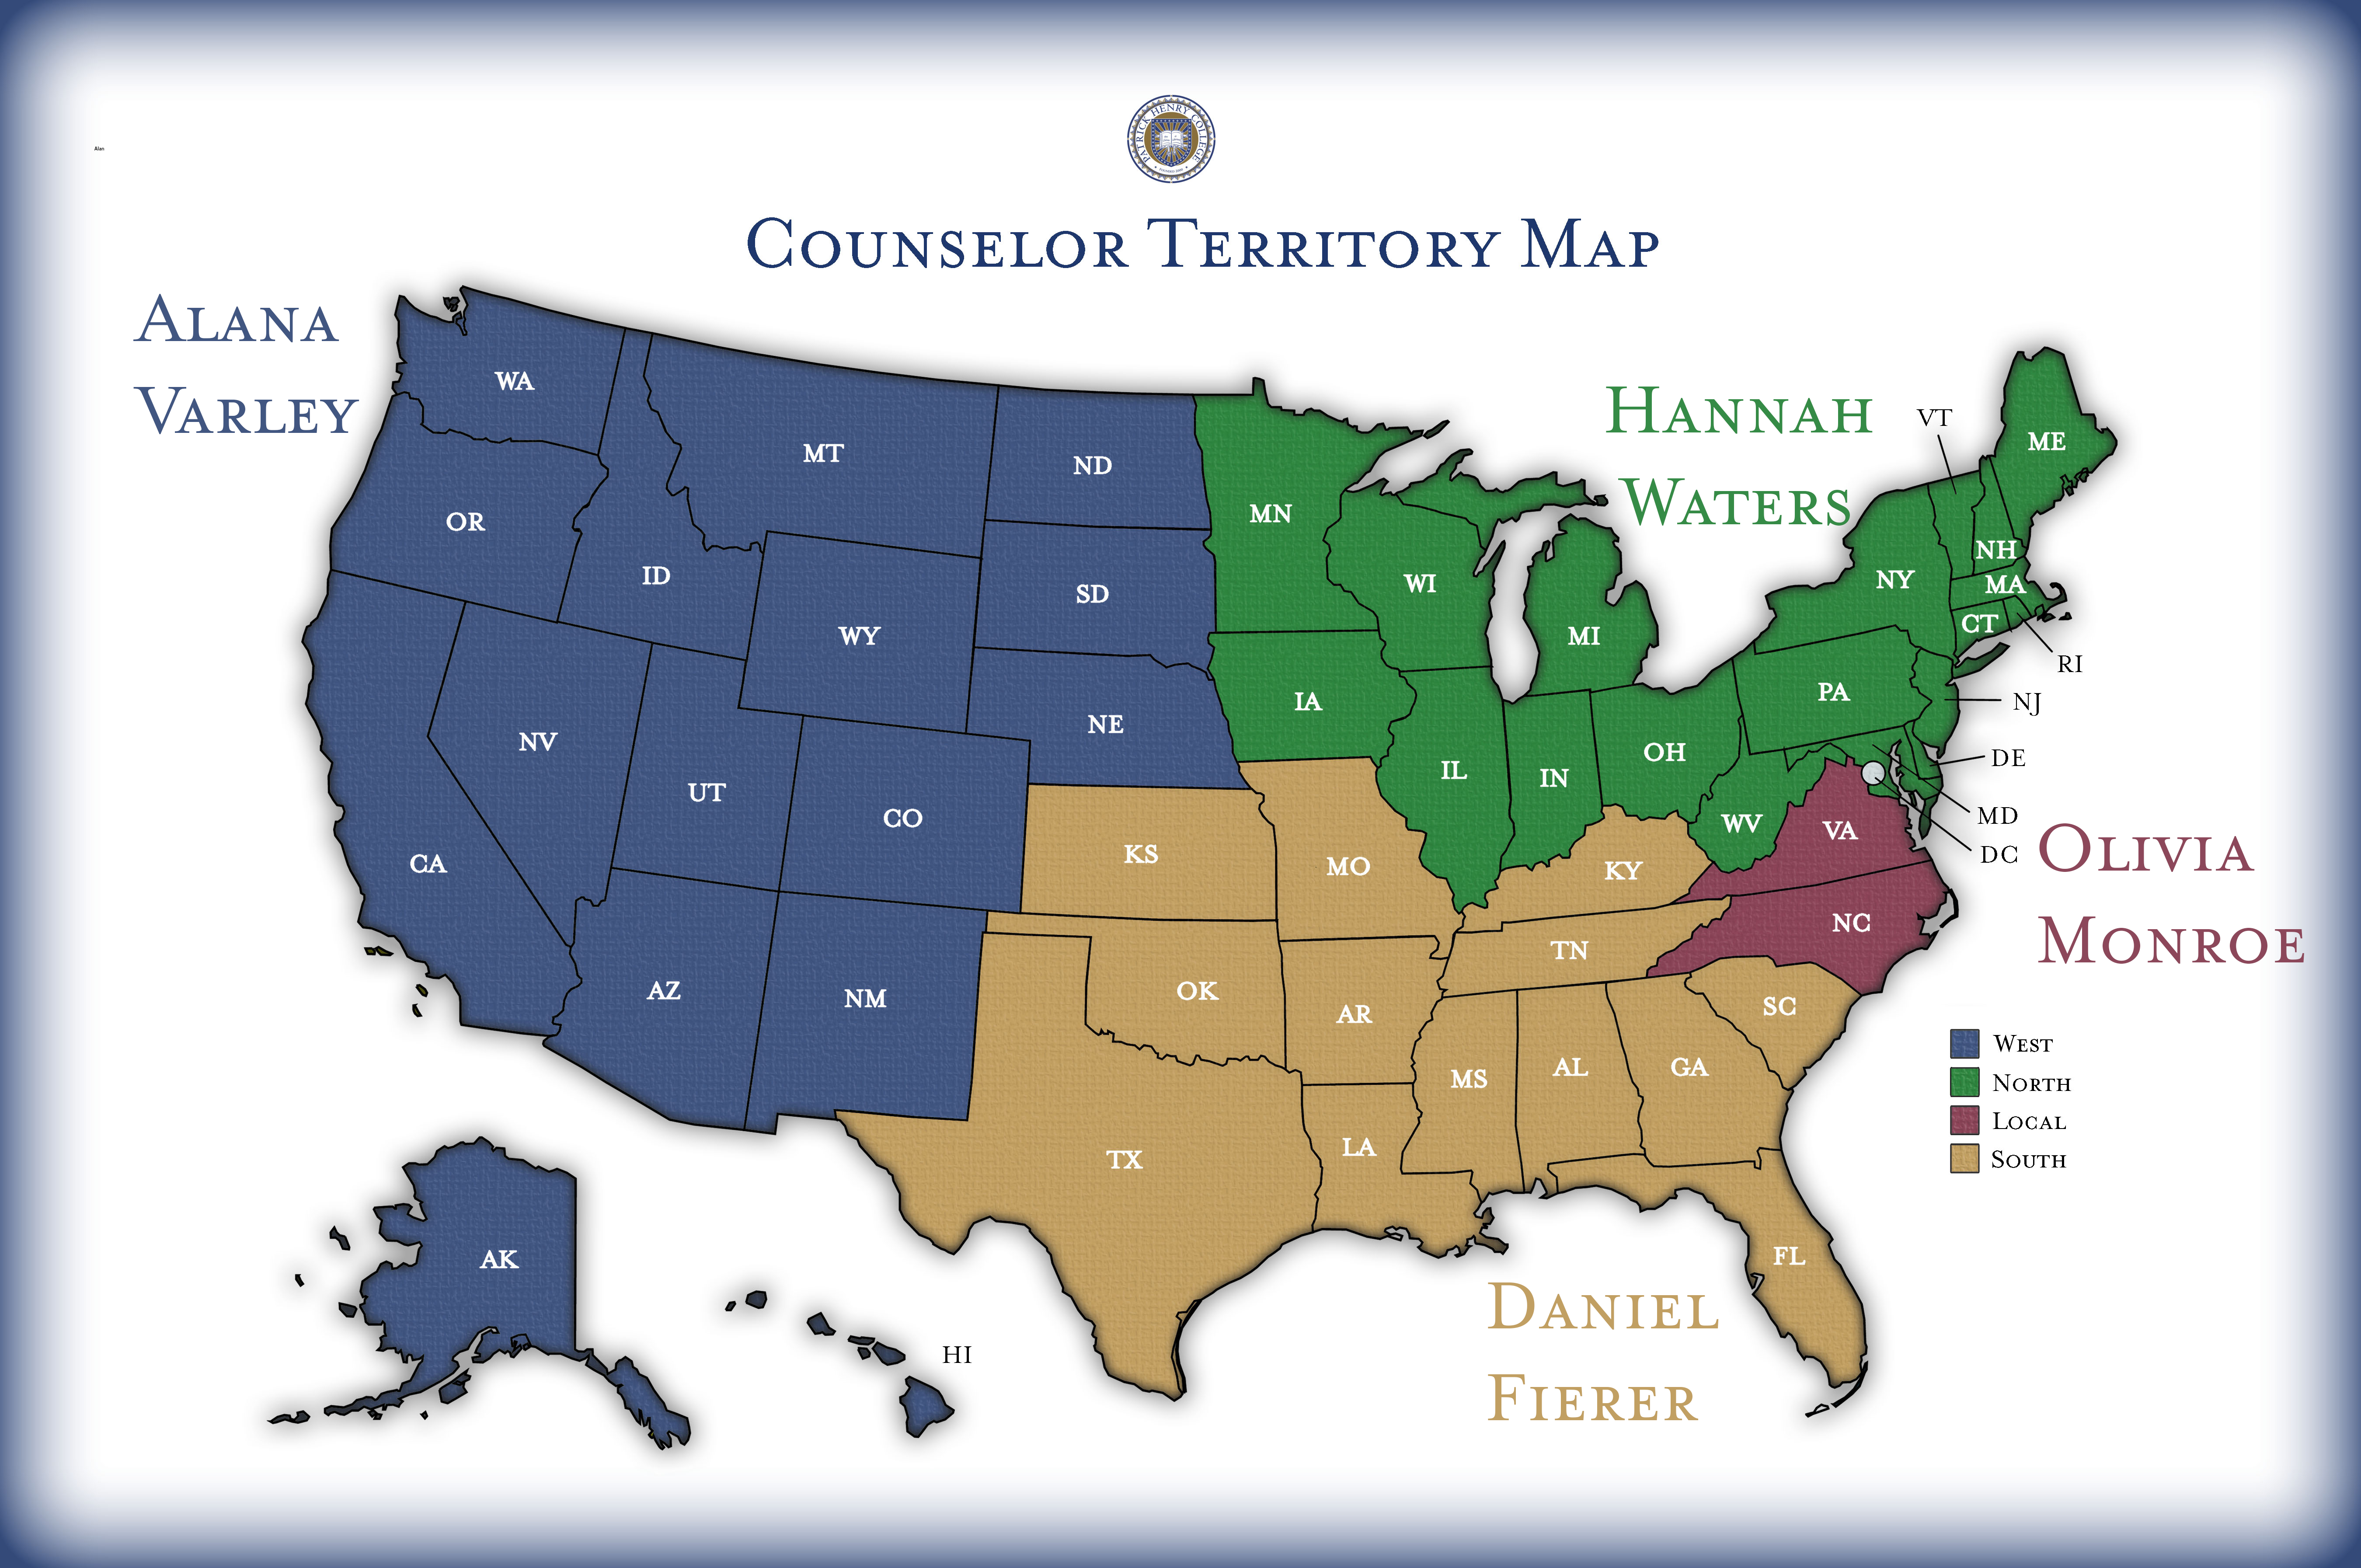 PHC Admissions Counselor Territory Map